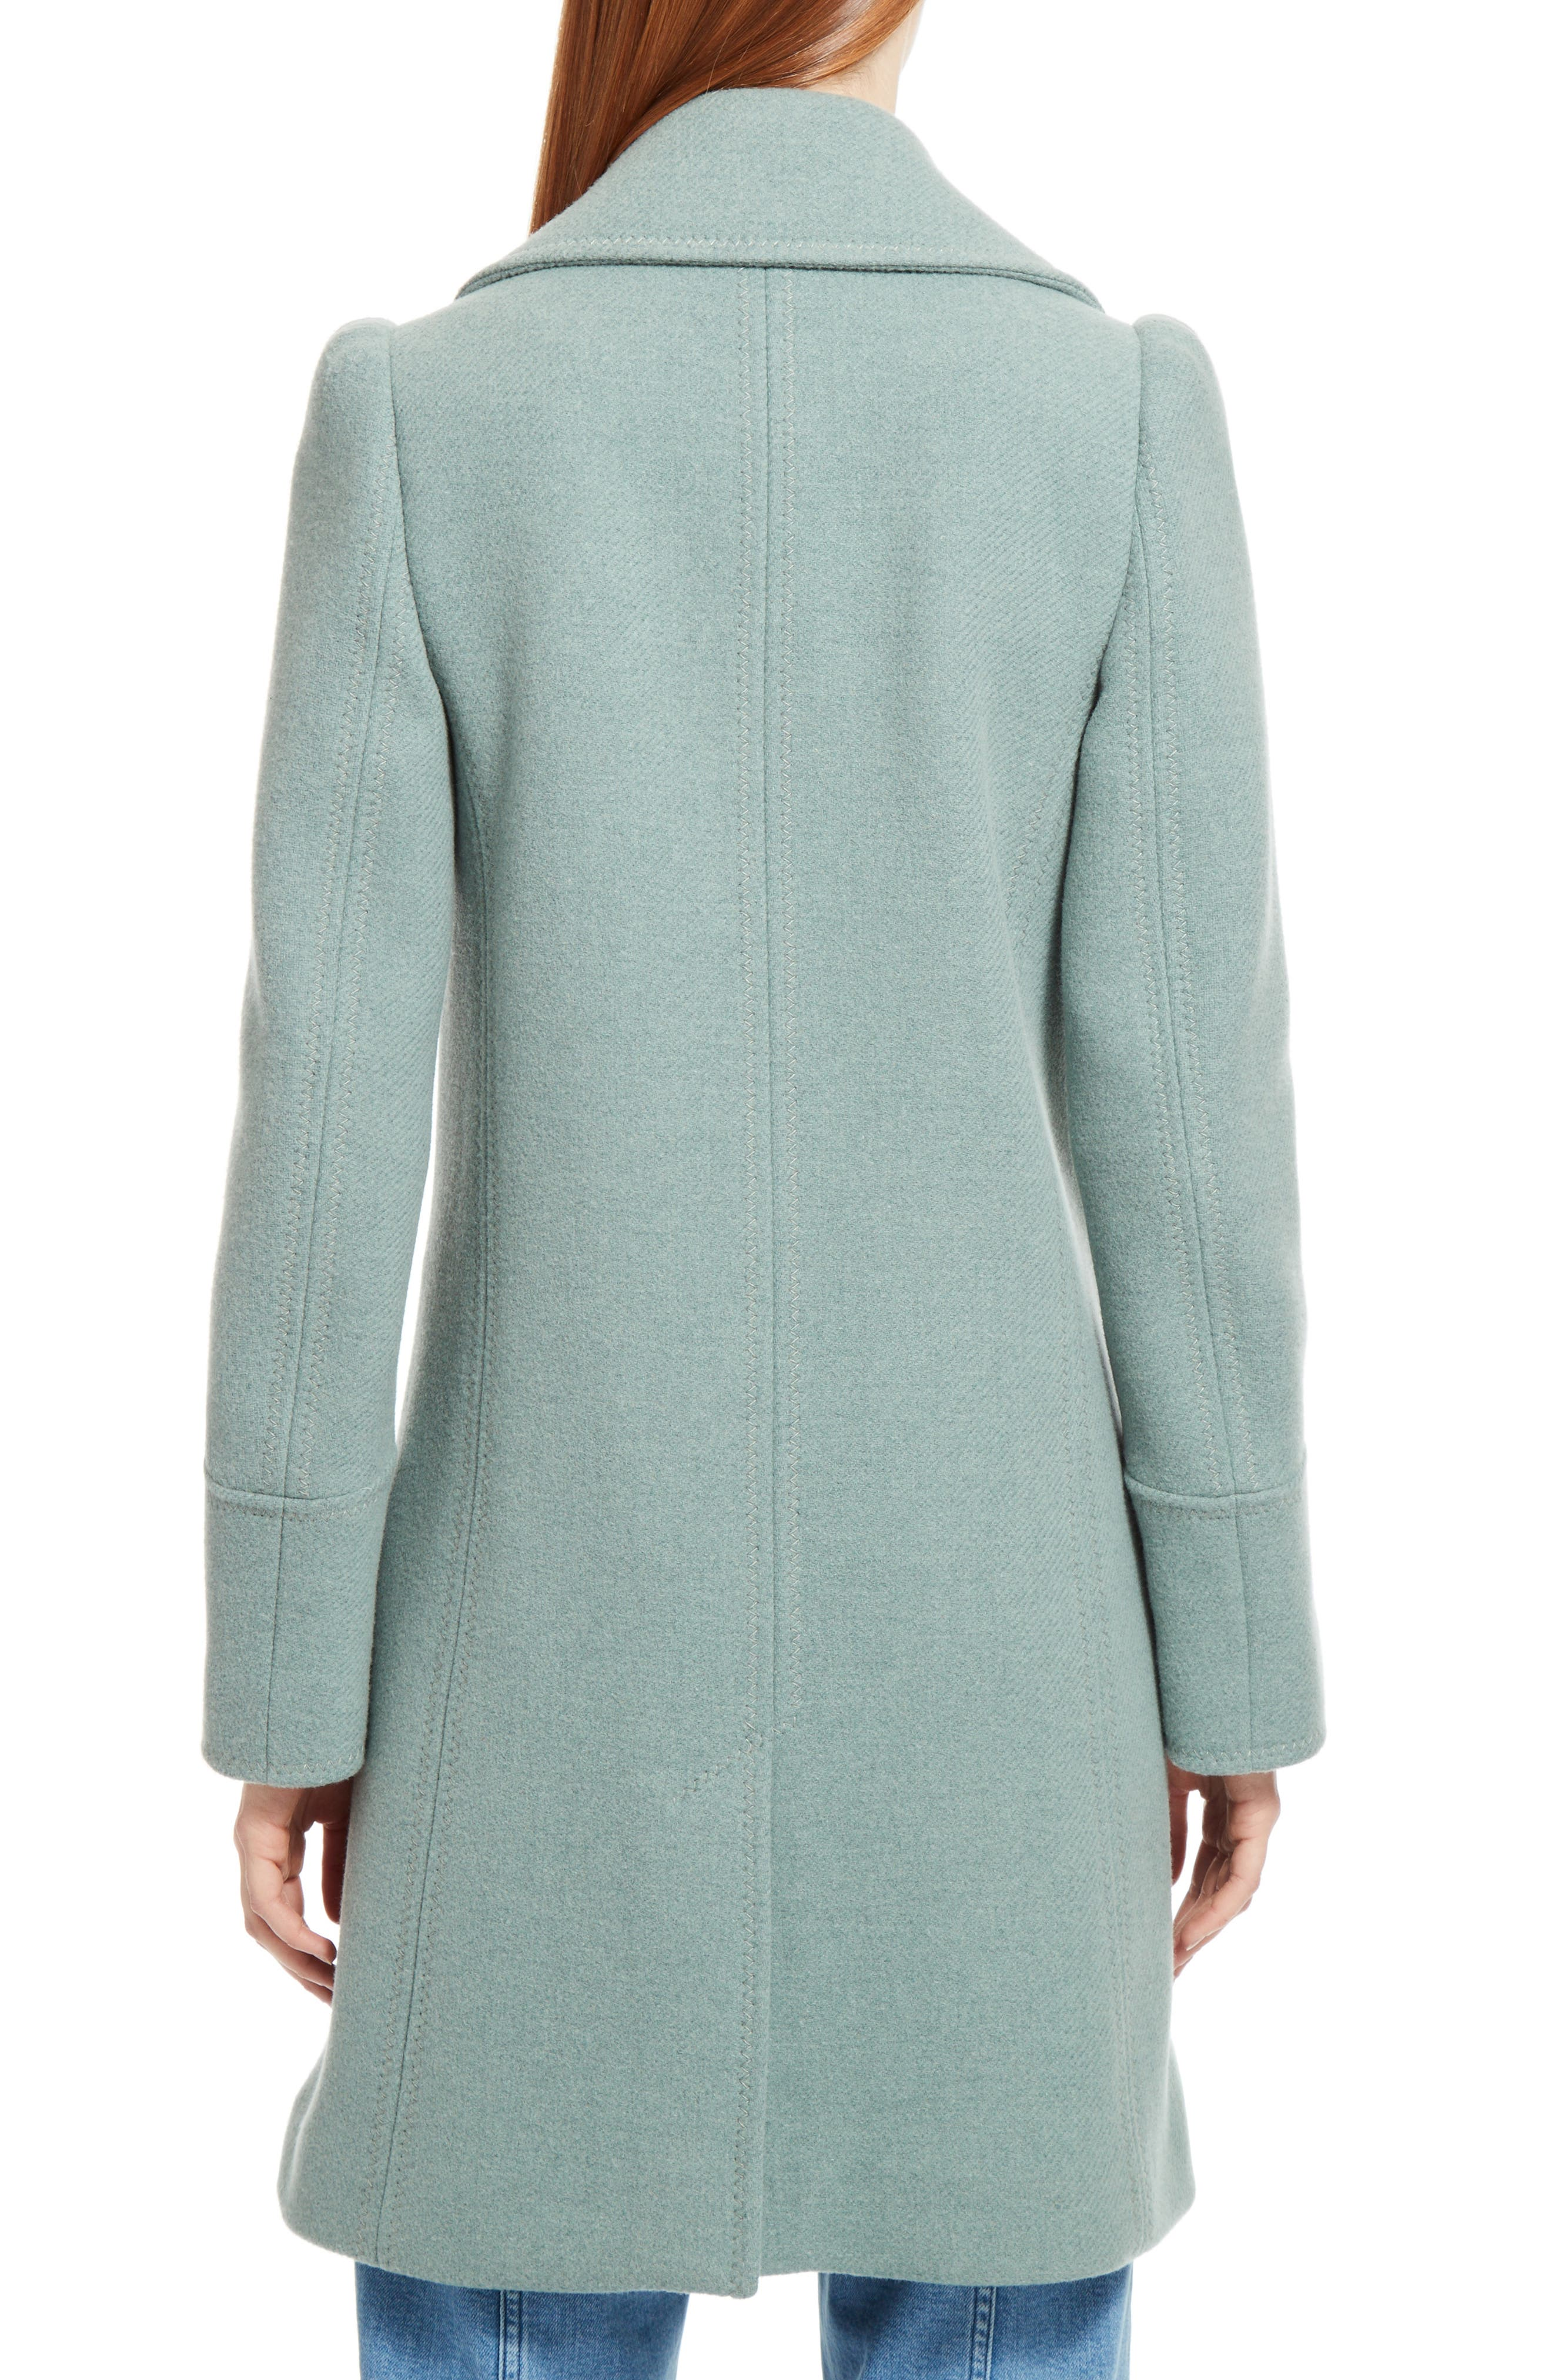 Alternate Image 2  - Chloé Iconic Wool Blend Coat